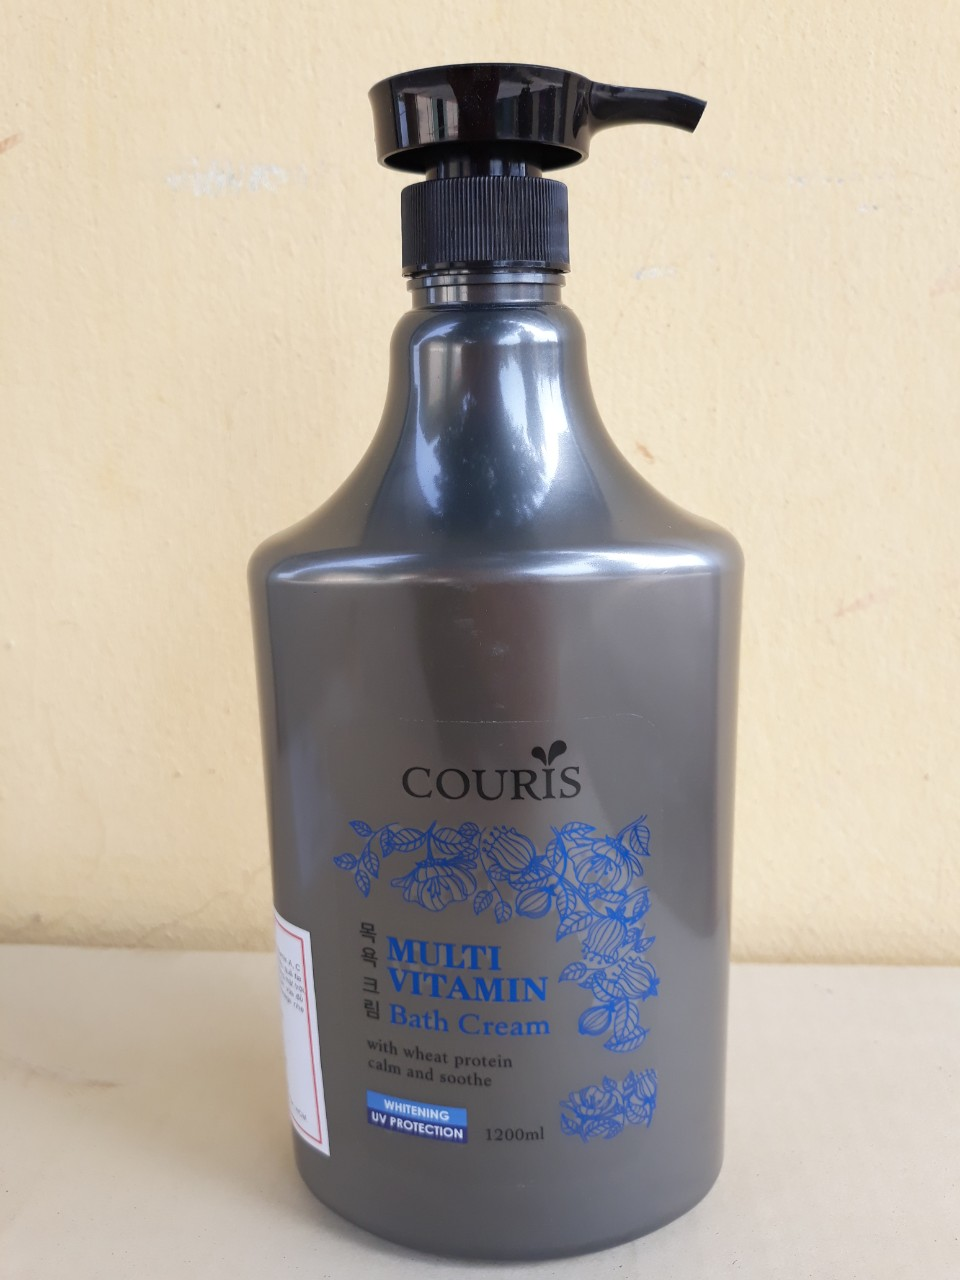 Sữa tắm Couris multi vitamin 1200ml